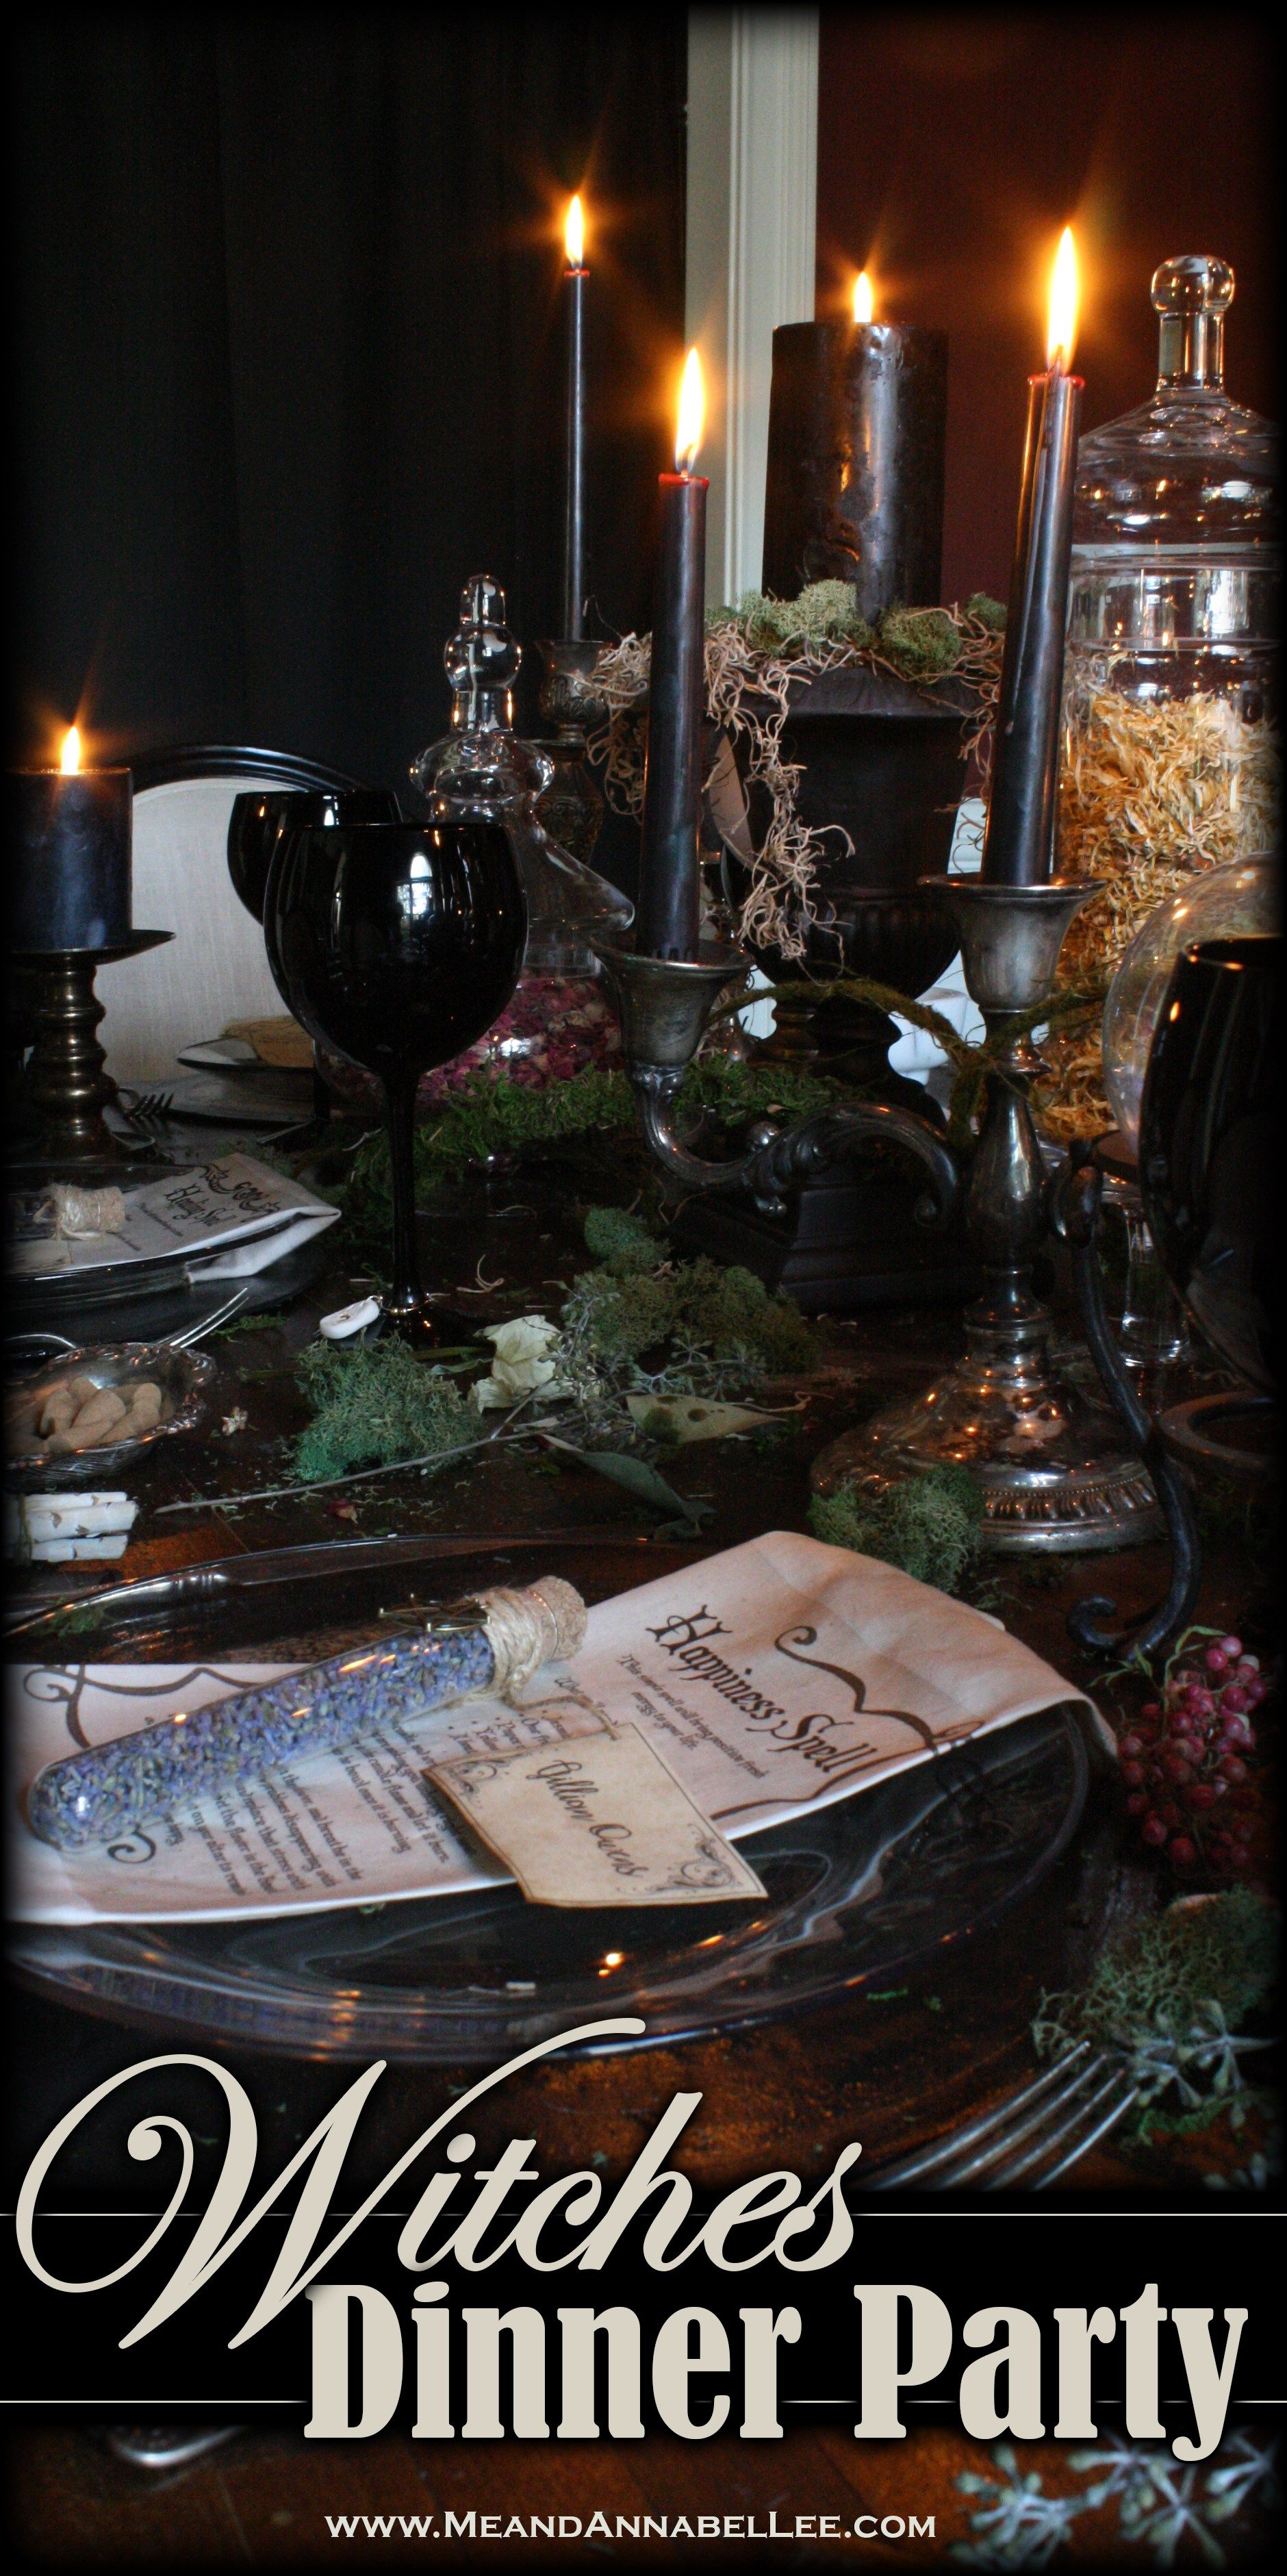 Witches' Dinner Party | Halloween Table | Samhain Celebration | Me and Annabel Lee #eleganthalloweendecor